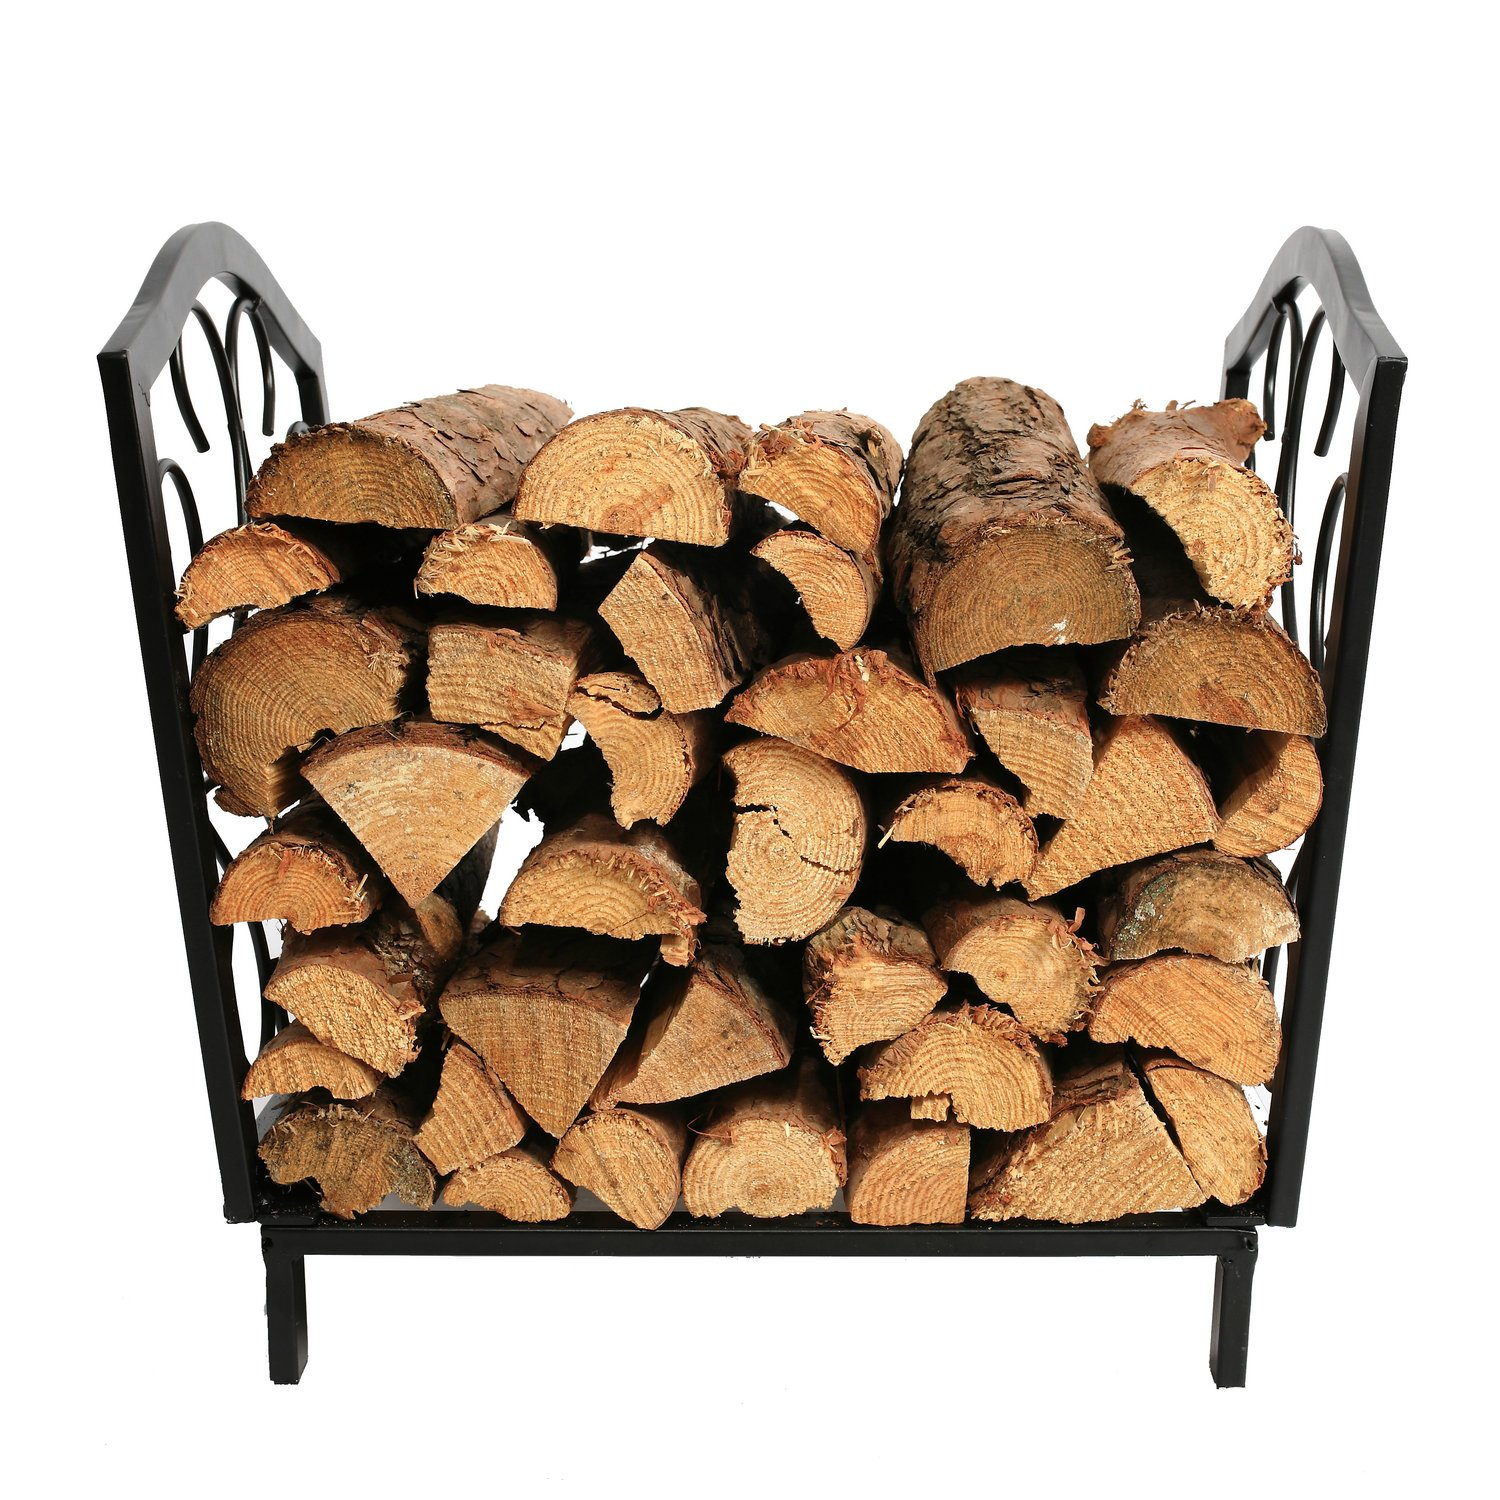 1.Go 16.75 Inches Indoor Decorative Firewood Rack, Fireside Log Rack for Fireplace